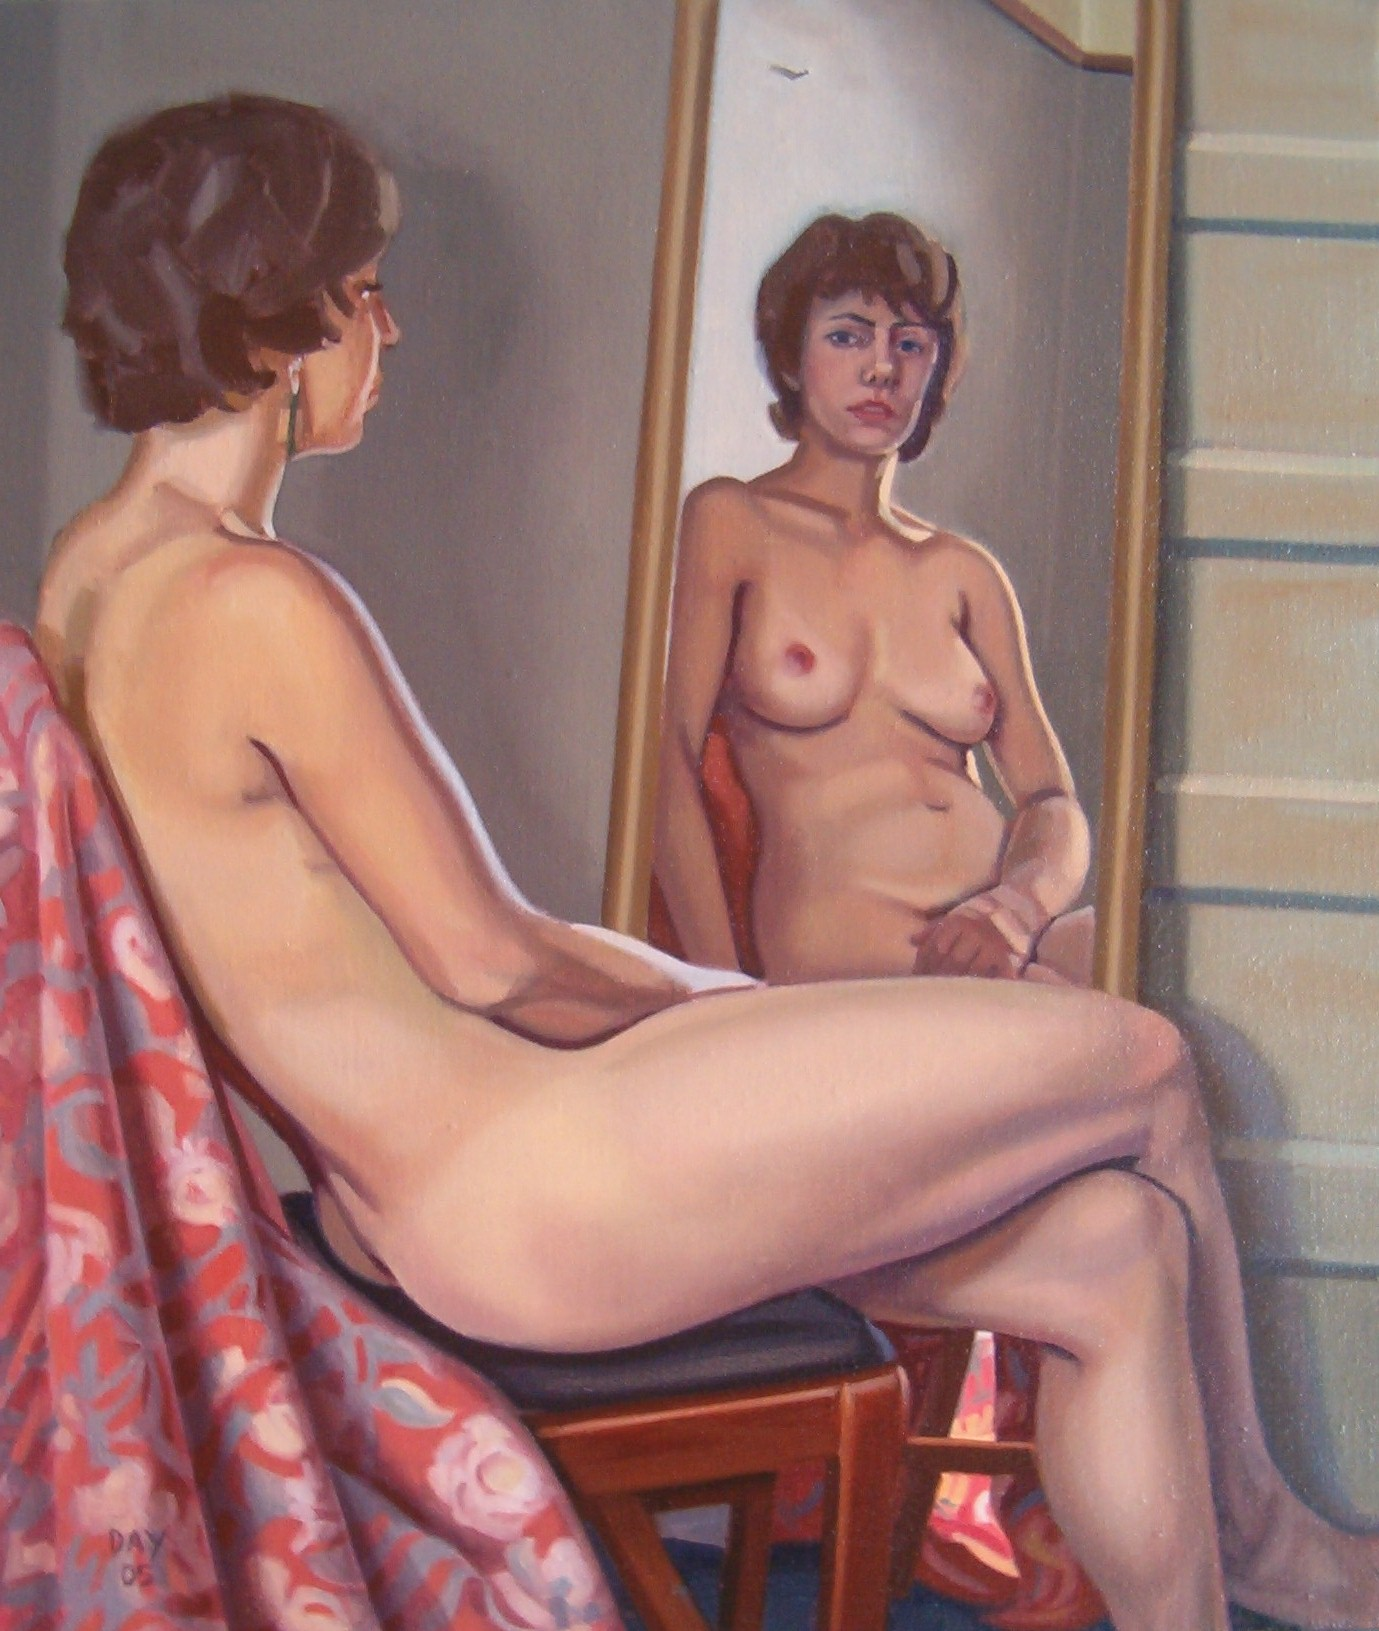 Nude in Mirror